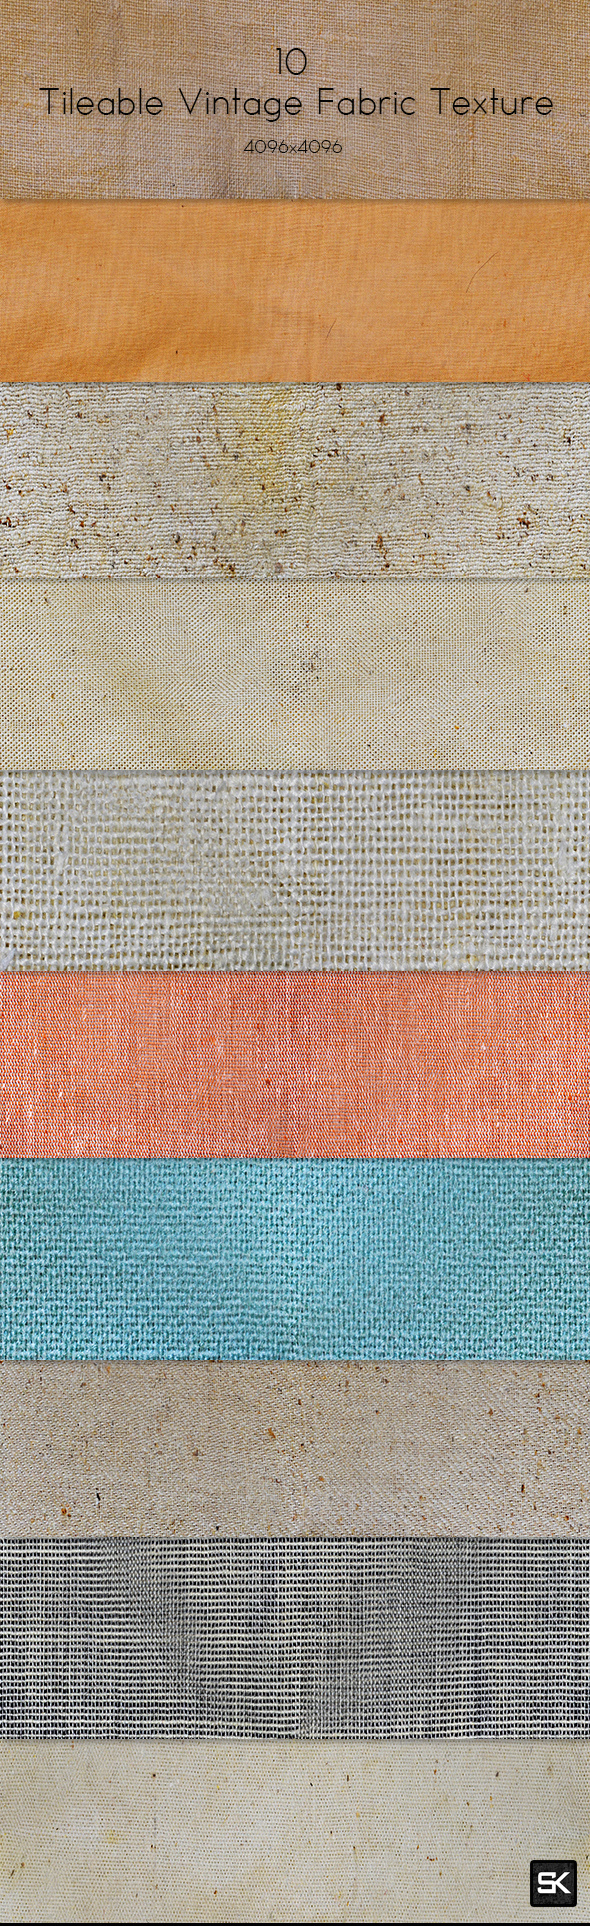 10 Tileable Vintage Fabric Texture - Miscellaneous Textures / Fills / Patterns